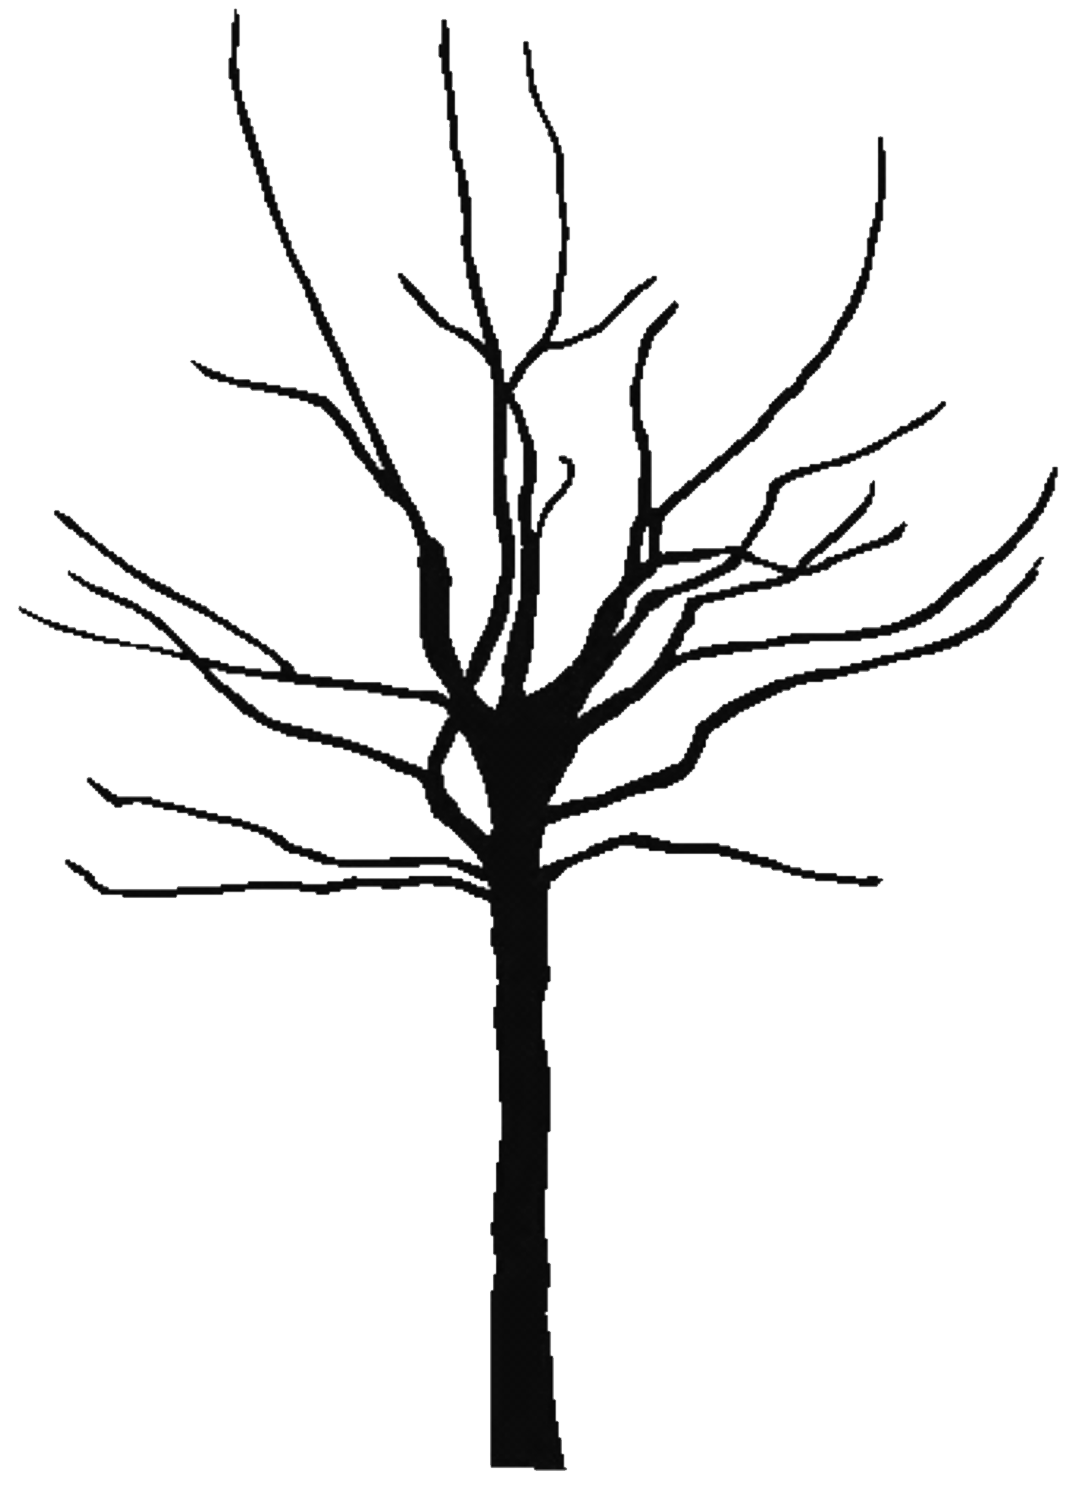 Tree  black and white black tree outline free download clip art on